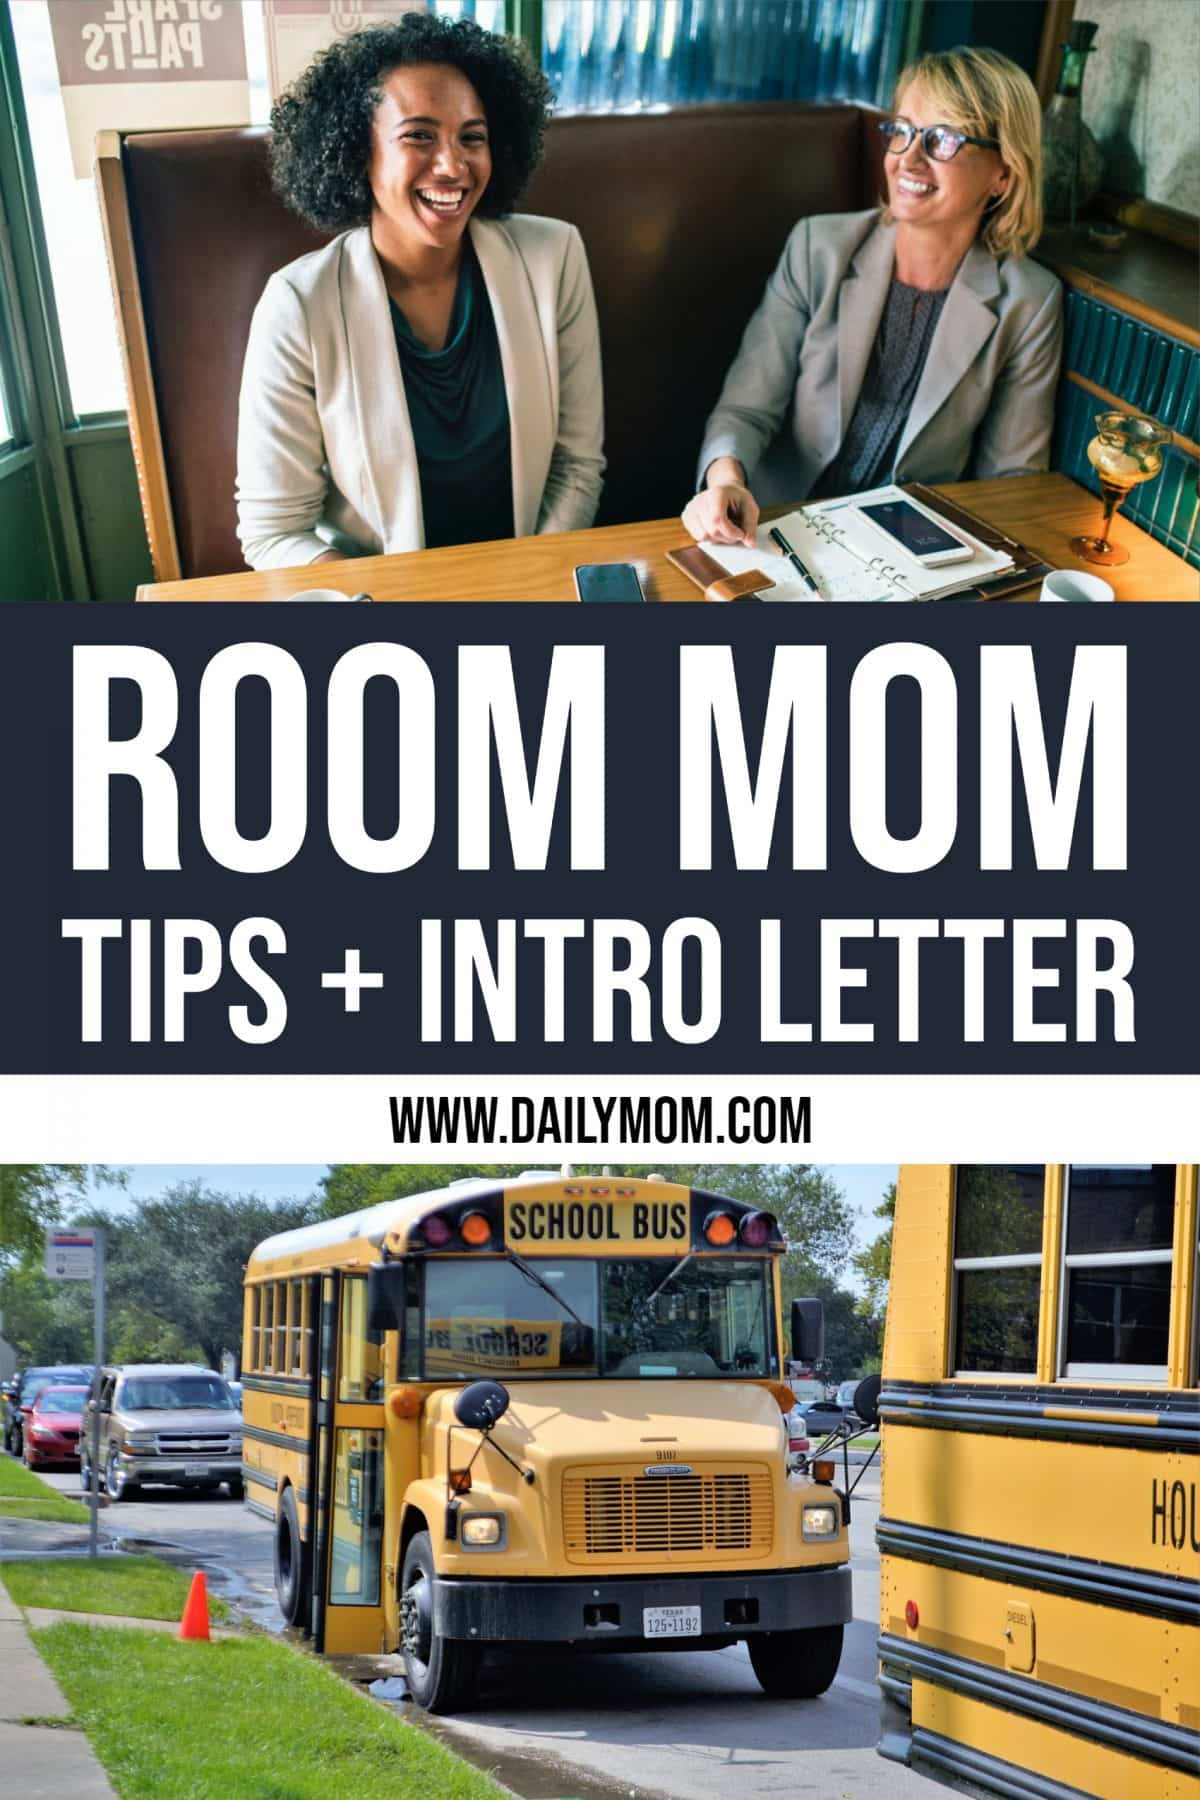 All You Need To Know About Being A Room Mom (+introduction Letter)